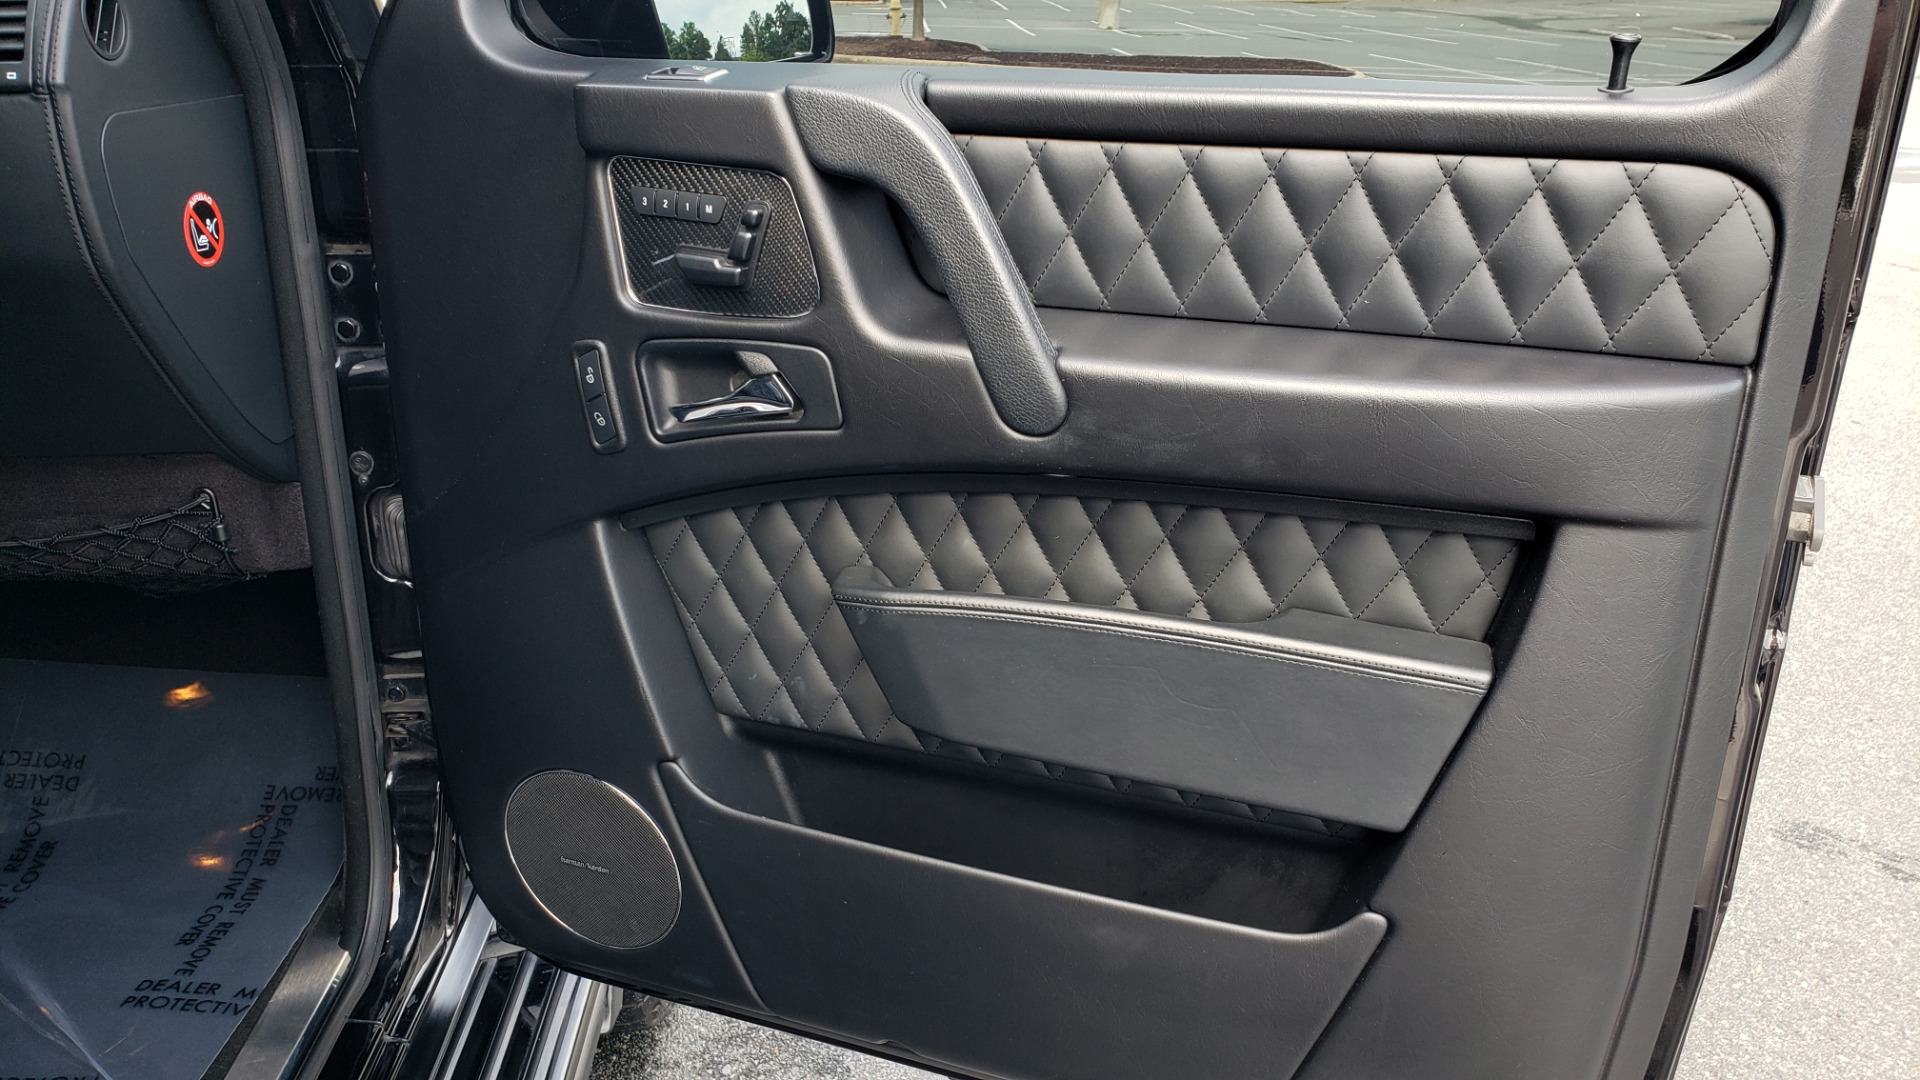 Used 2016 Mercedes-Benz G-CLASS AMG G 63 4MATIC / NAV / SUNROOF / H/K SND / ENT SYS / REARVIEW for sale $99,000 at Formula Imports in Charlotte NC 28227 23